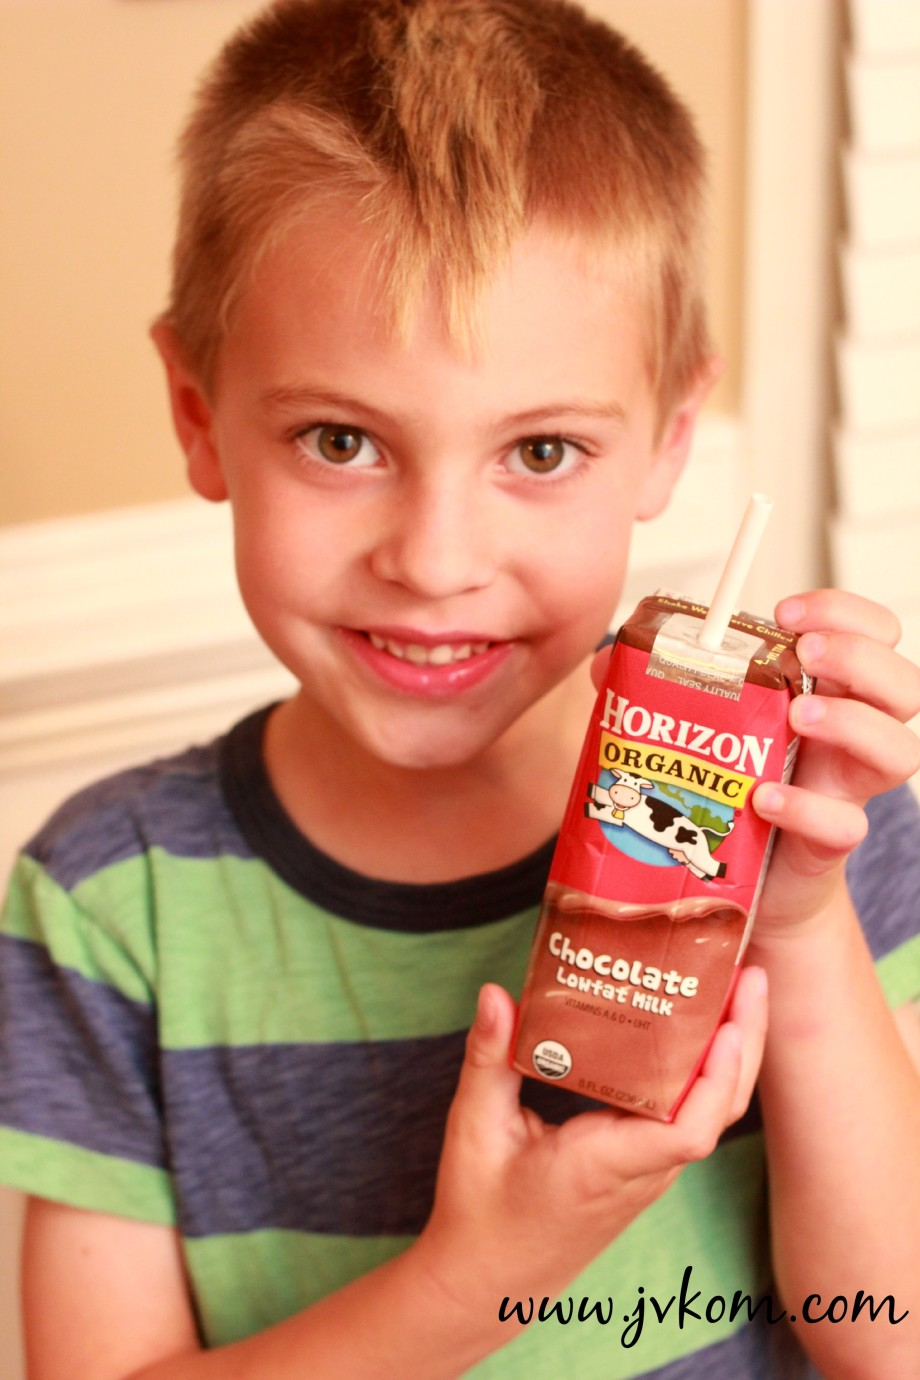 Horizon Milk #HorionLunch #cbias #ad